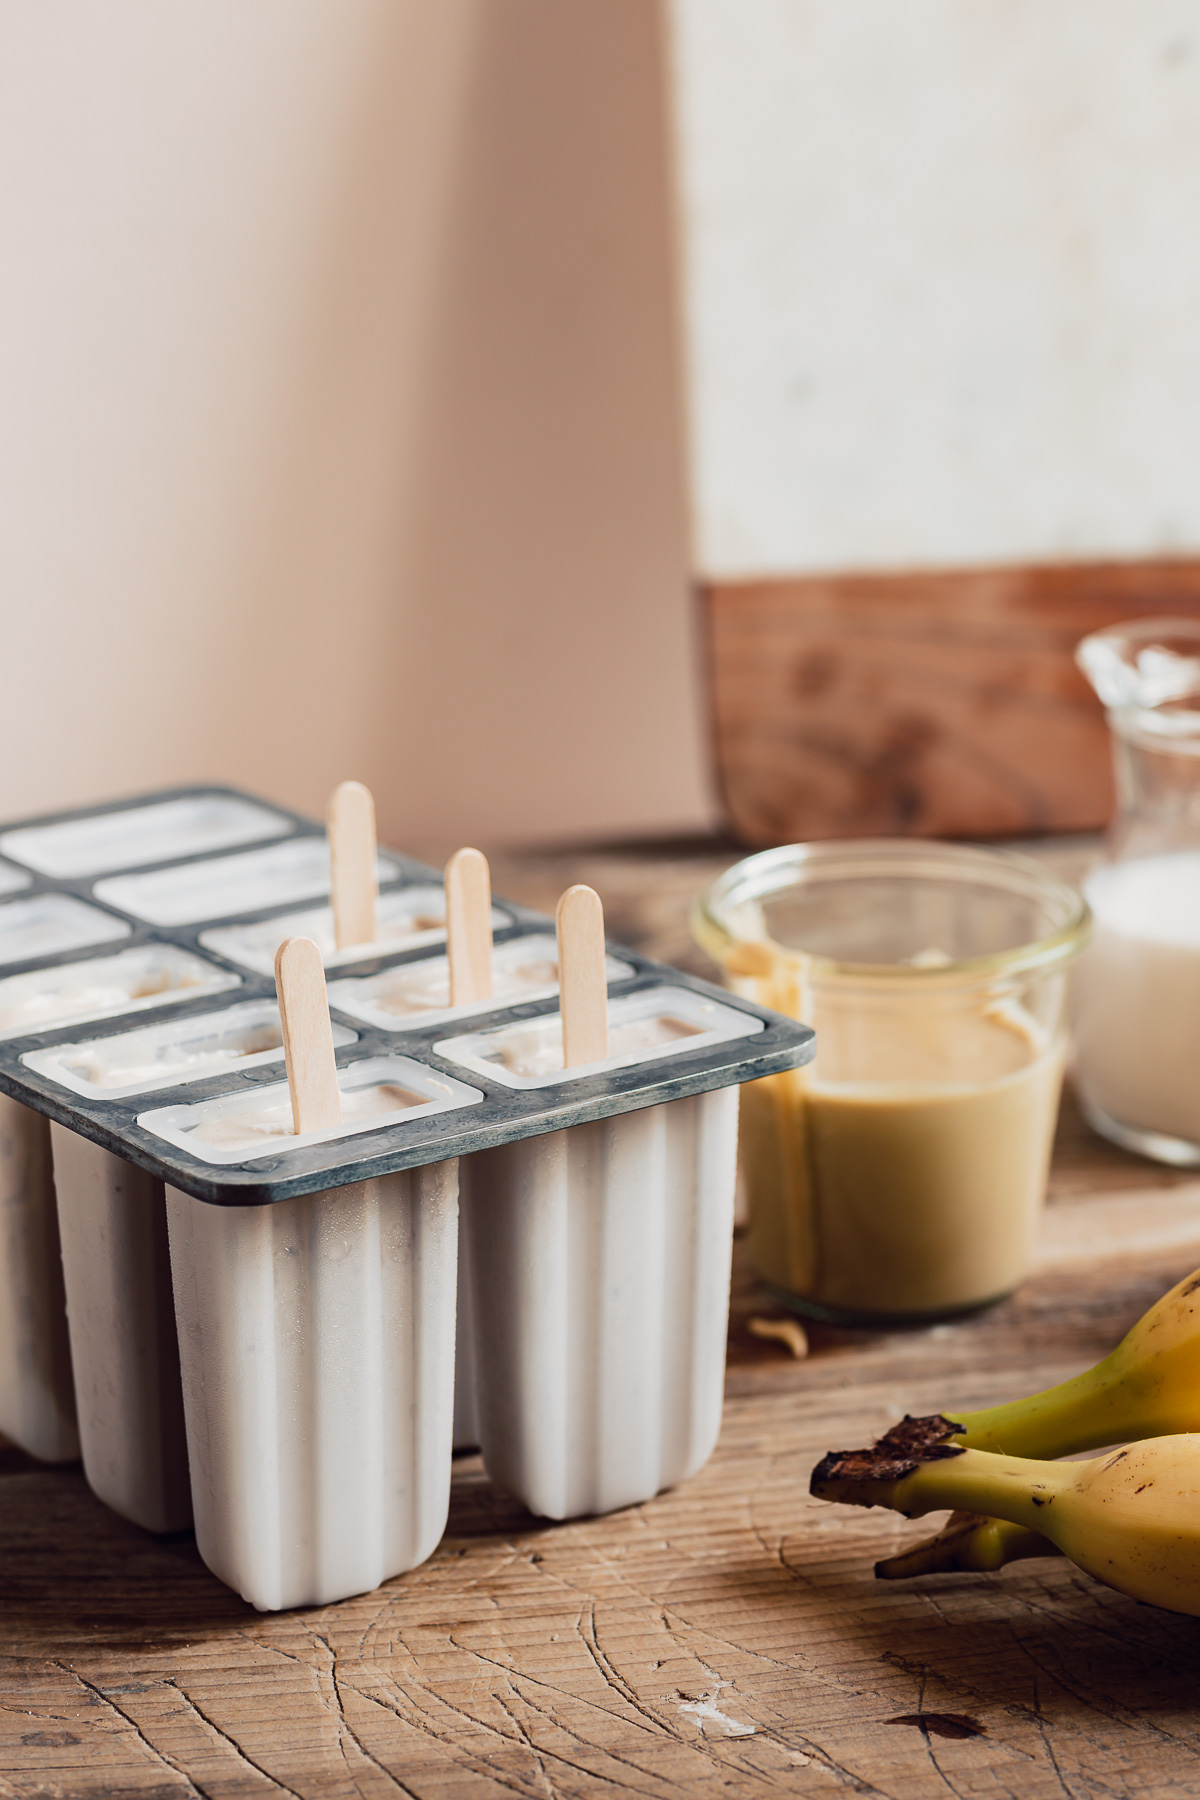 Come fare il gelato NICE CREAM alla BANANA e TAHINA ghiaccioli con glassa al cioccolato bianco fatta in casa VEGAN banana tahini nice cream popsicles with white chocolate glaze recipe